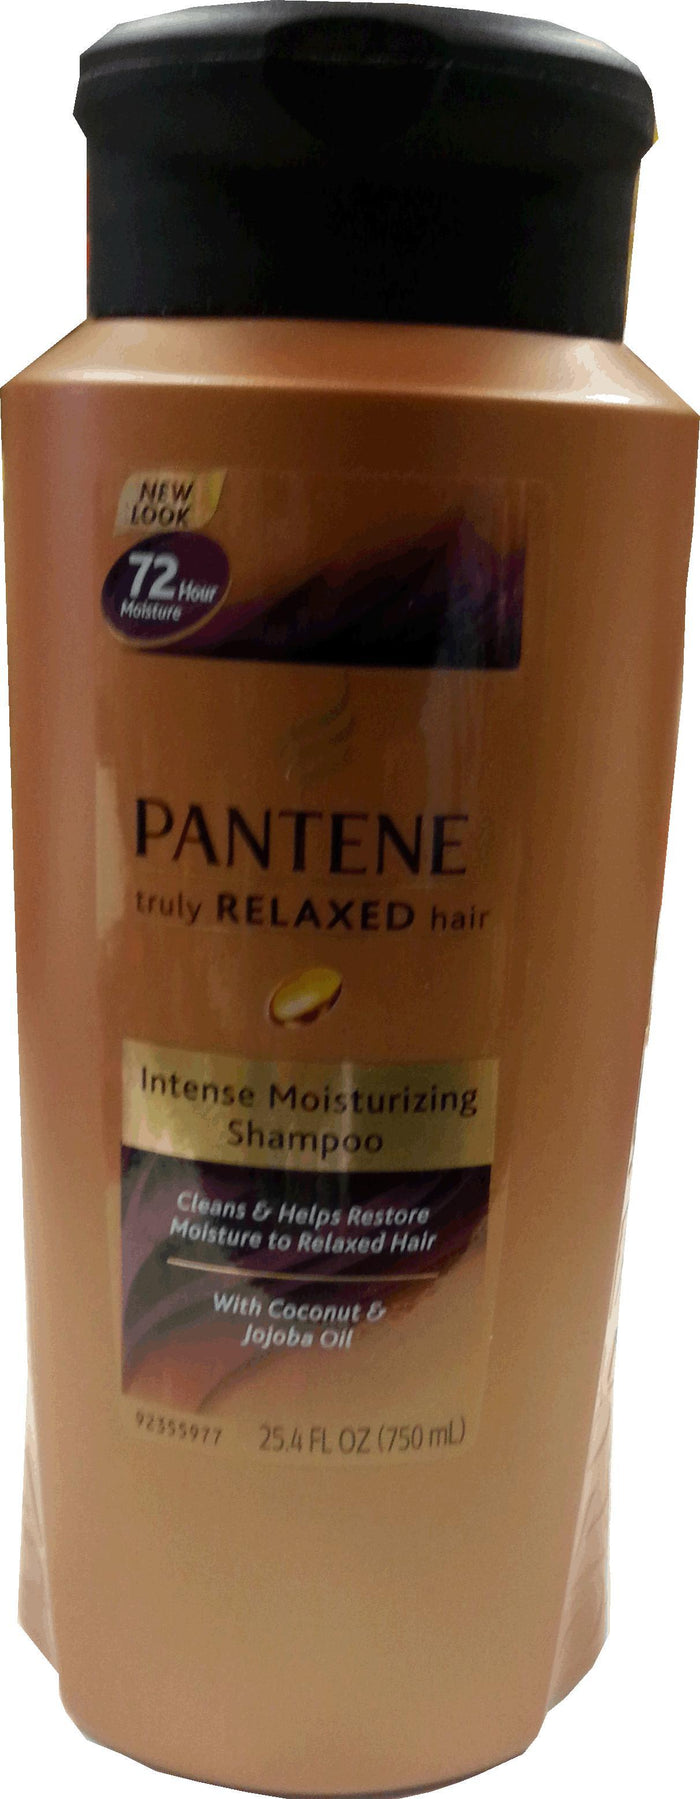 Pantene Intense Moisturizing Shampoo 750 ml